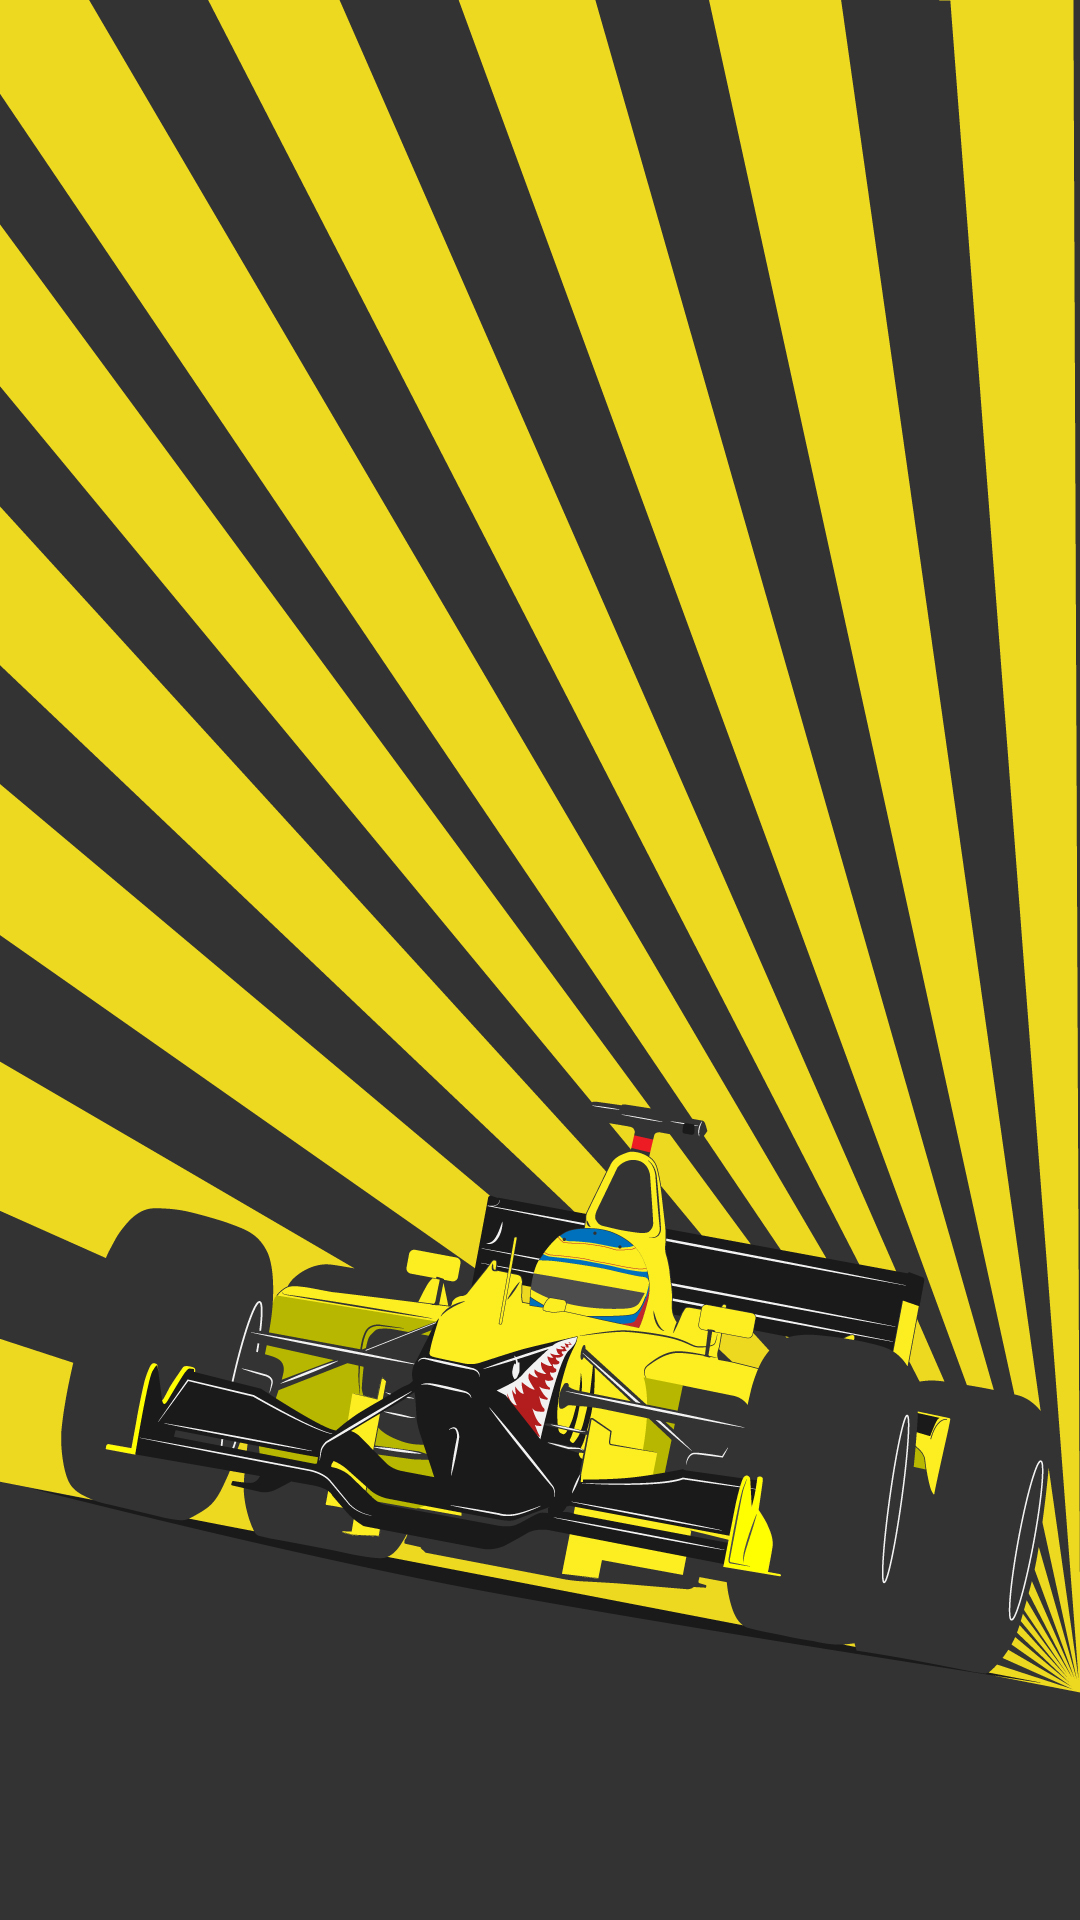 Honda Phone Wallpapers Bitten Heroes The Jordan Honda Ej11 Phone Wallpaper Formula1